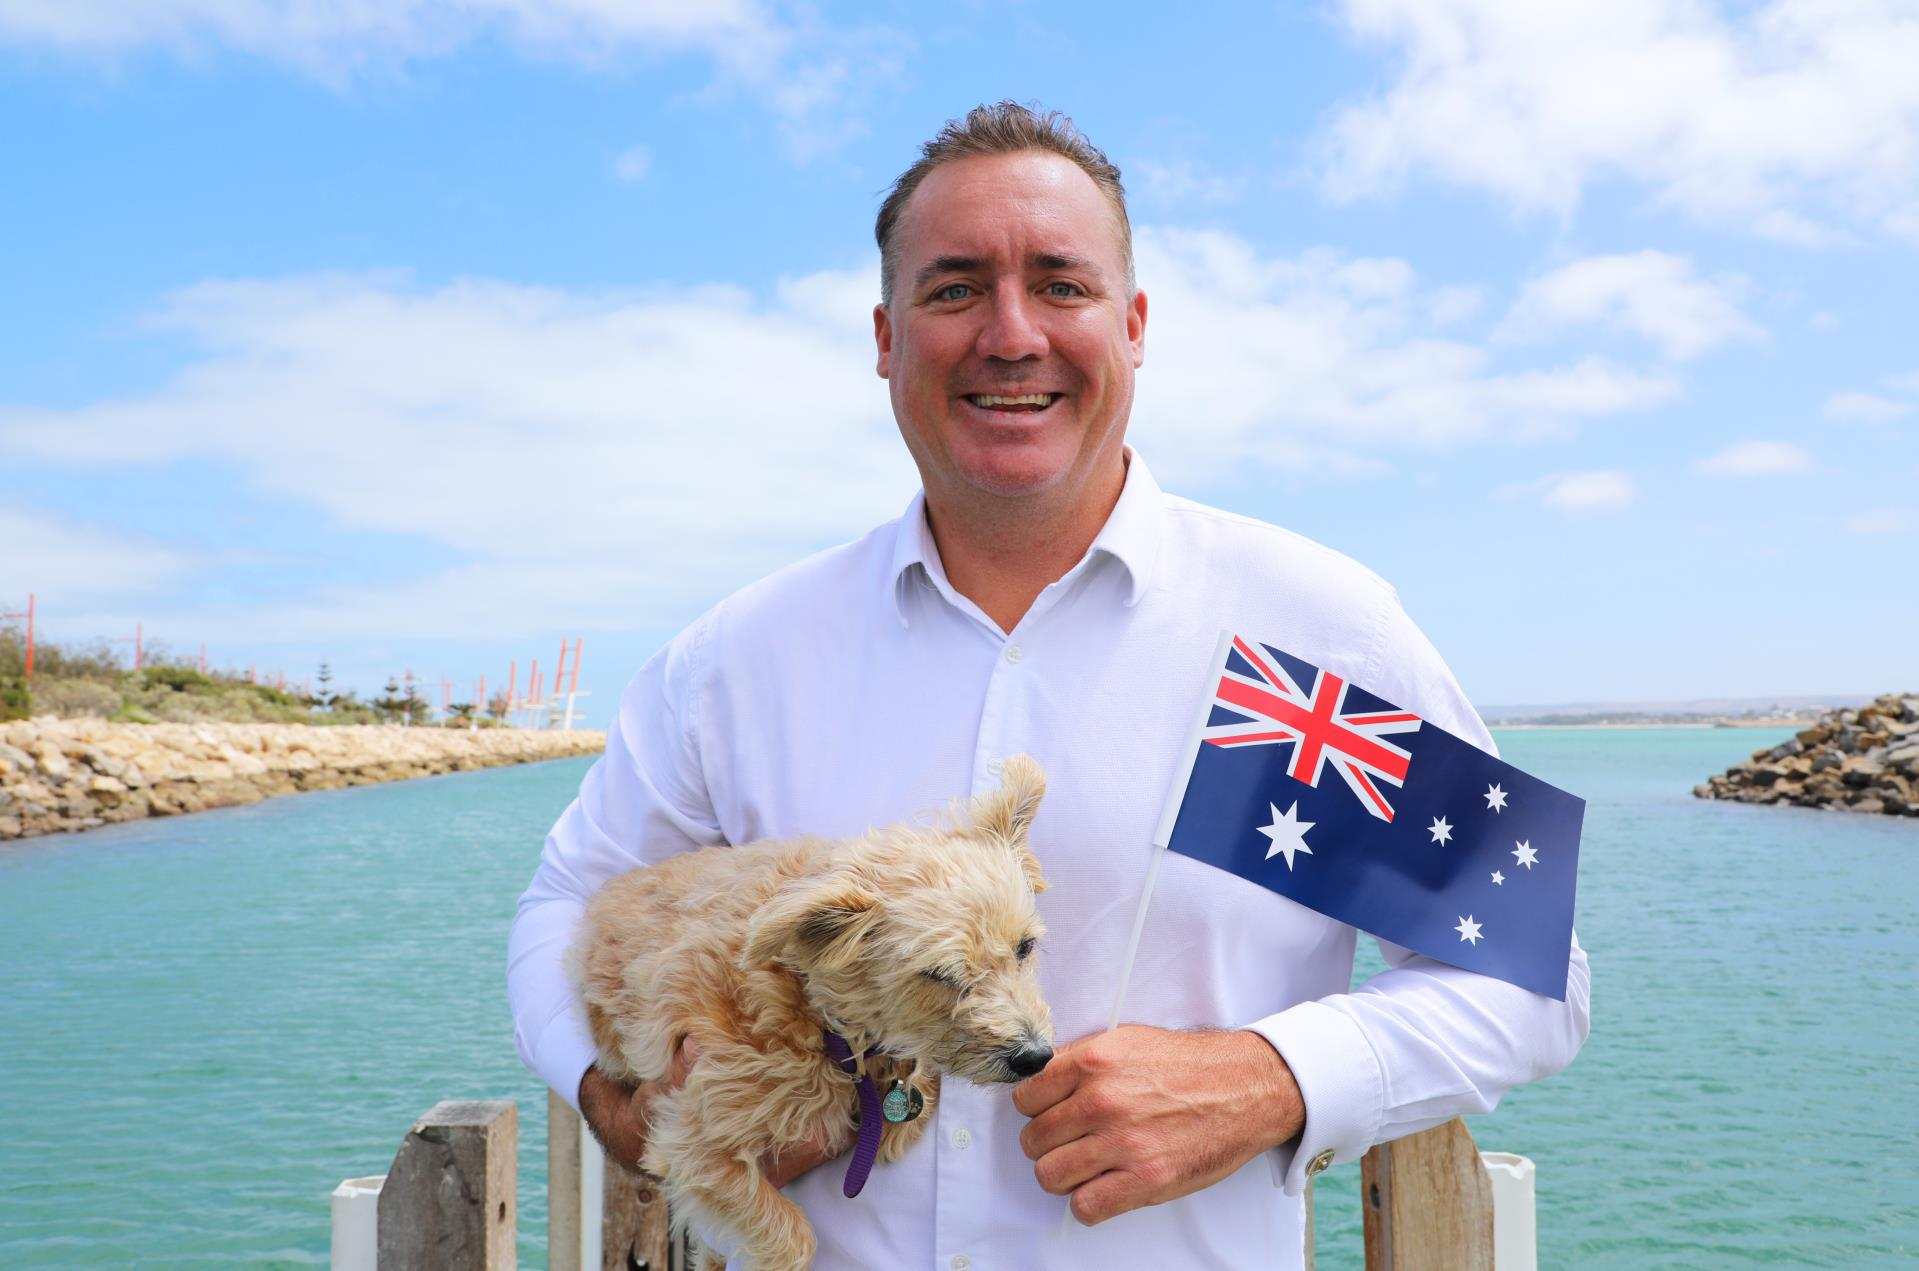 Celebrations galore this Sunday for Australia Day